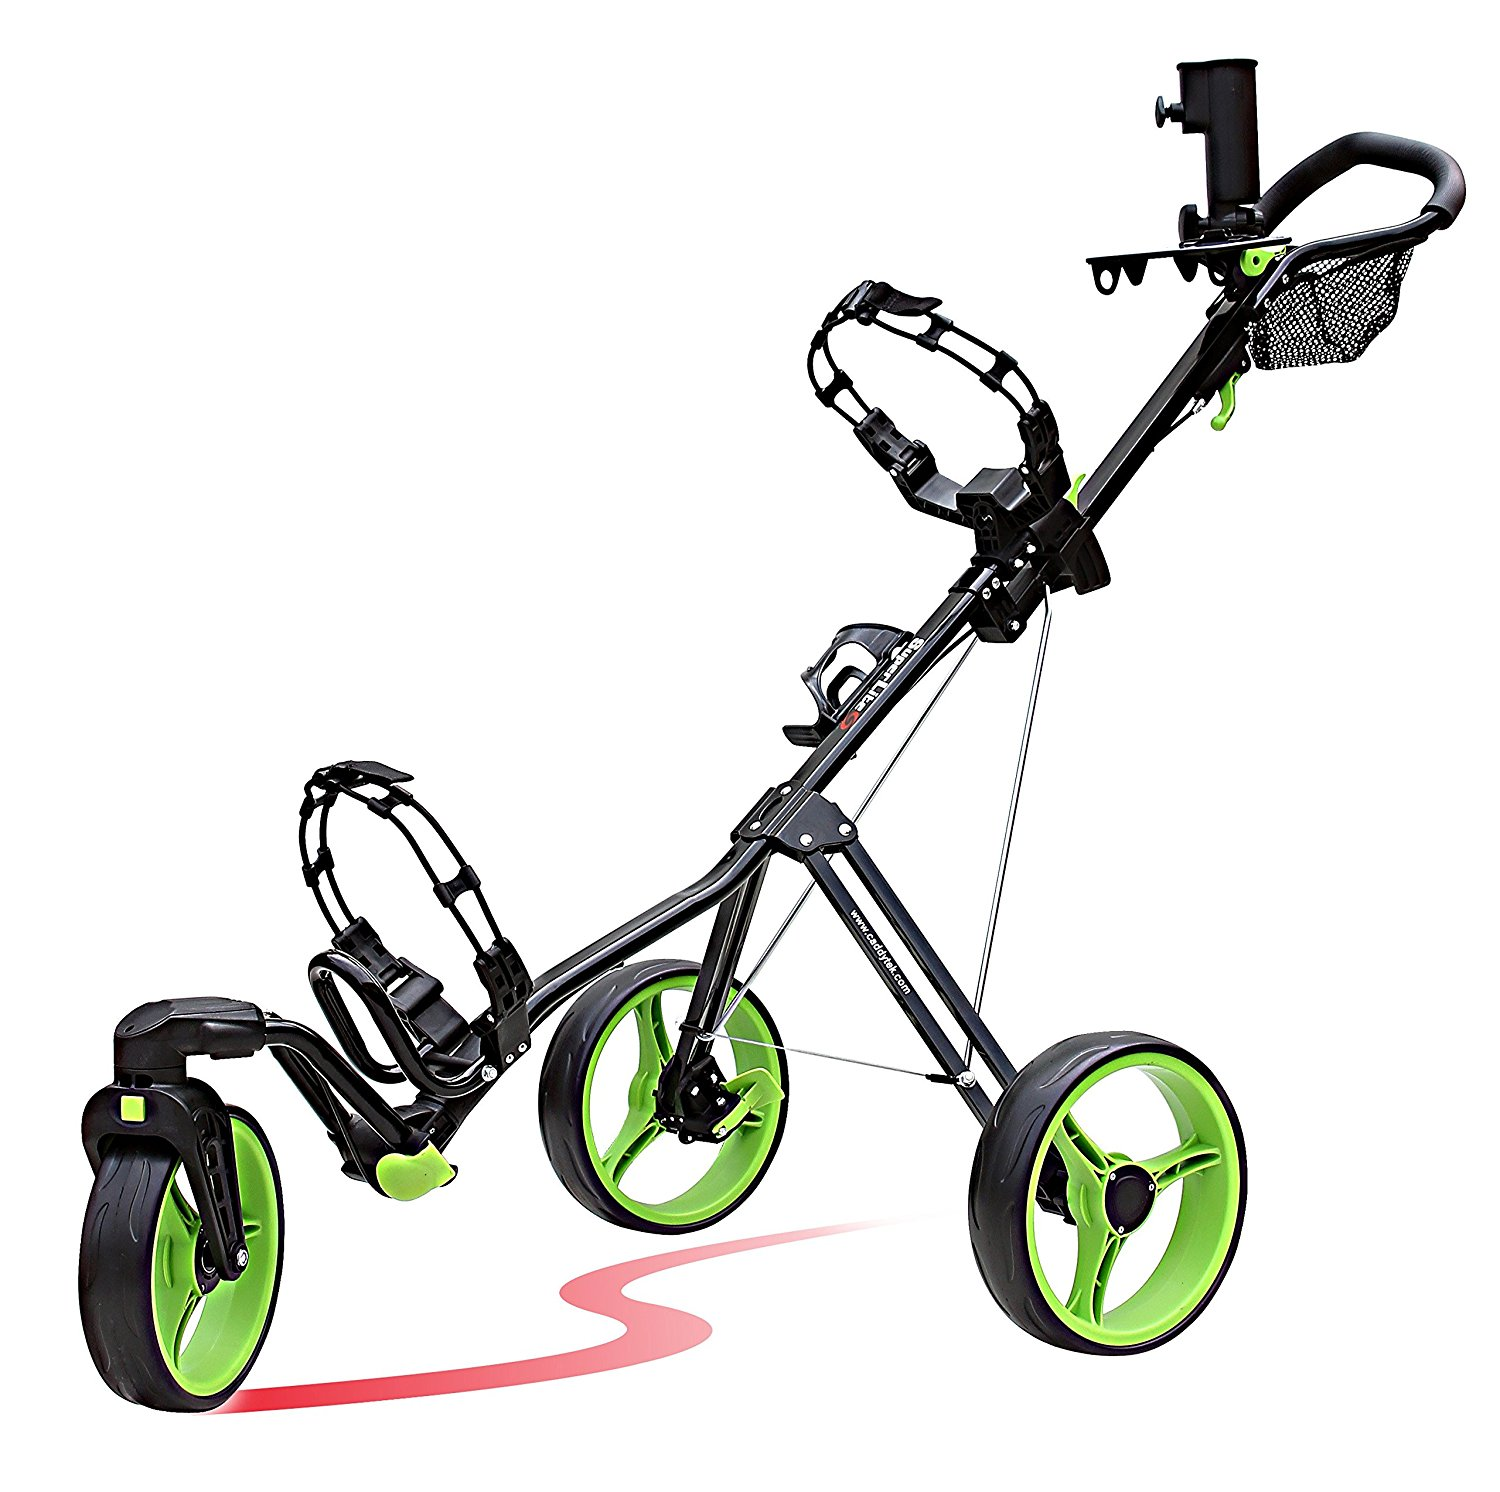 CaddyTek SuperLite Deluxe 3 Wheel Golf Push Carts with Swivel Front Wheel